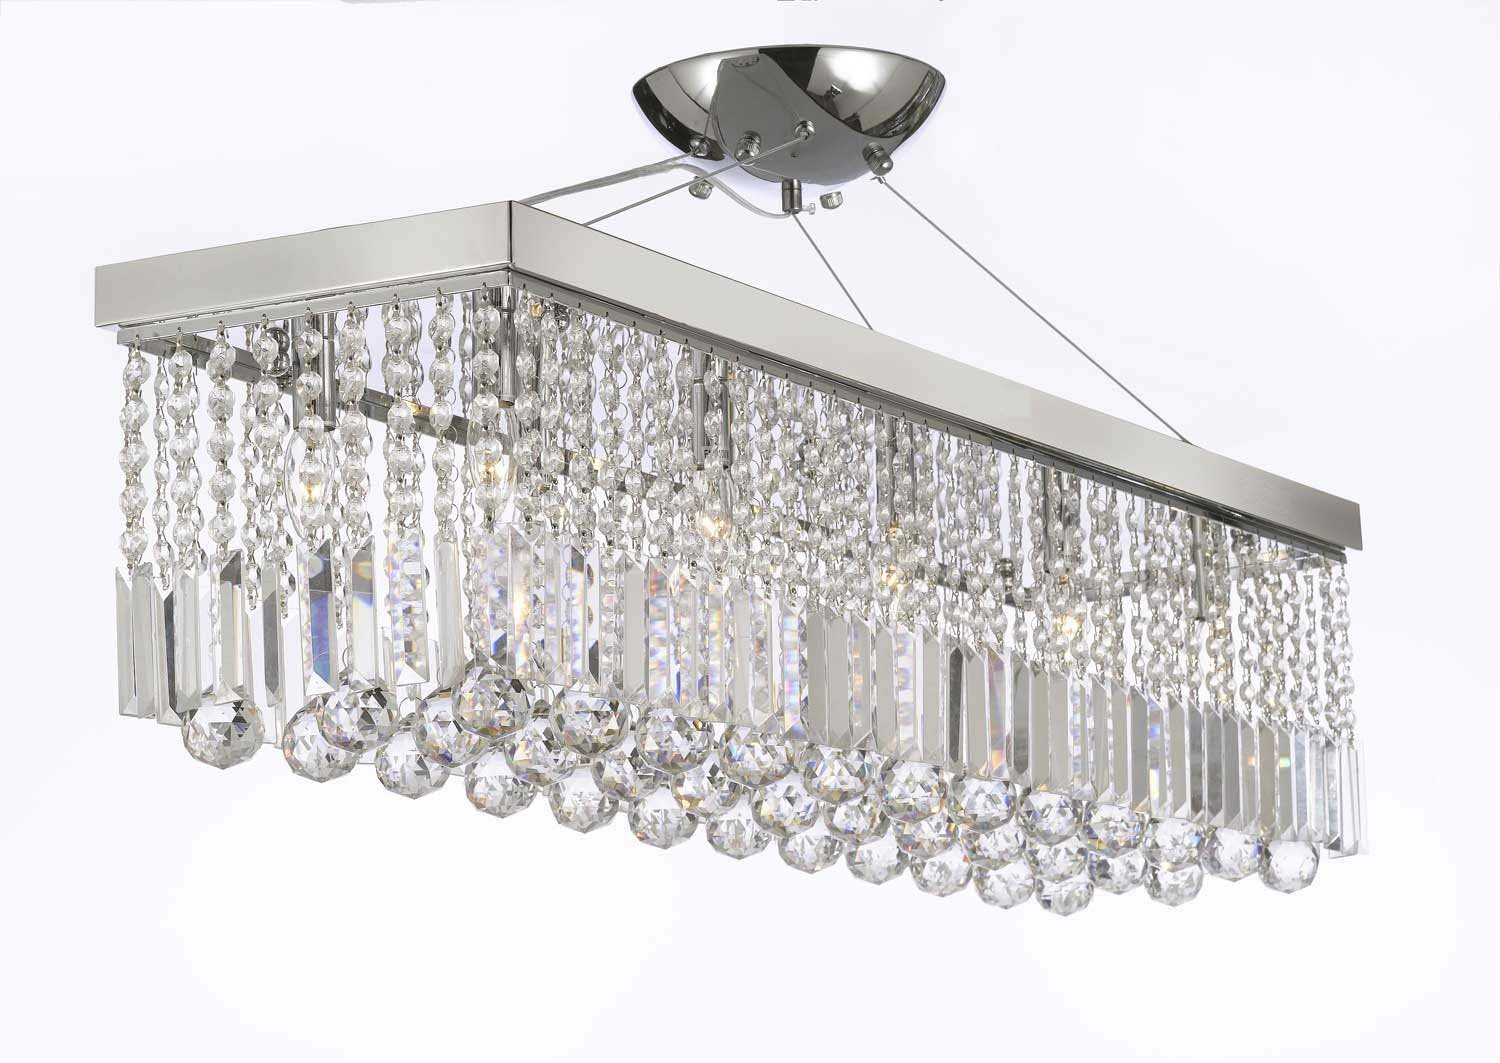 10 Light 40  Contemporary Crystal Chandelier Rectangular Chandeliers Lighting - - Amazon.com  sc 1 st  Amazon.com & 10 Light 40